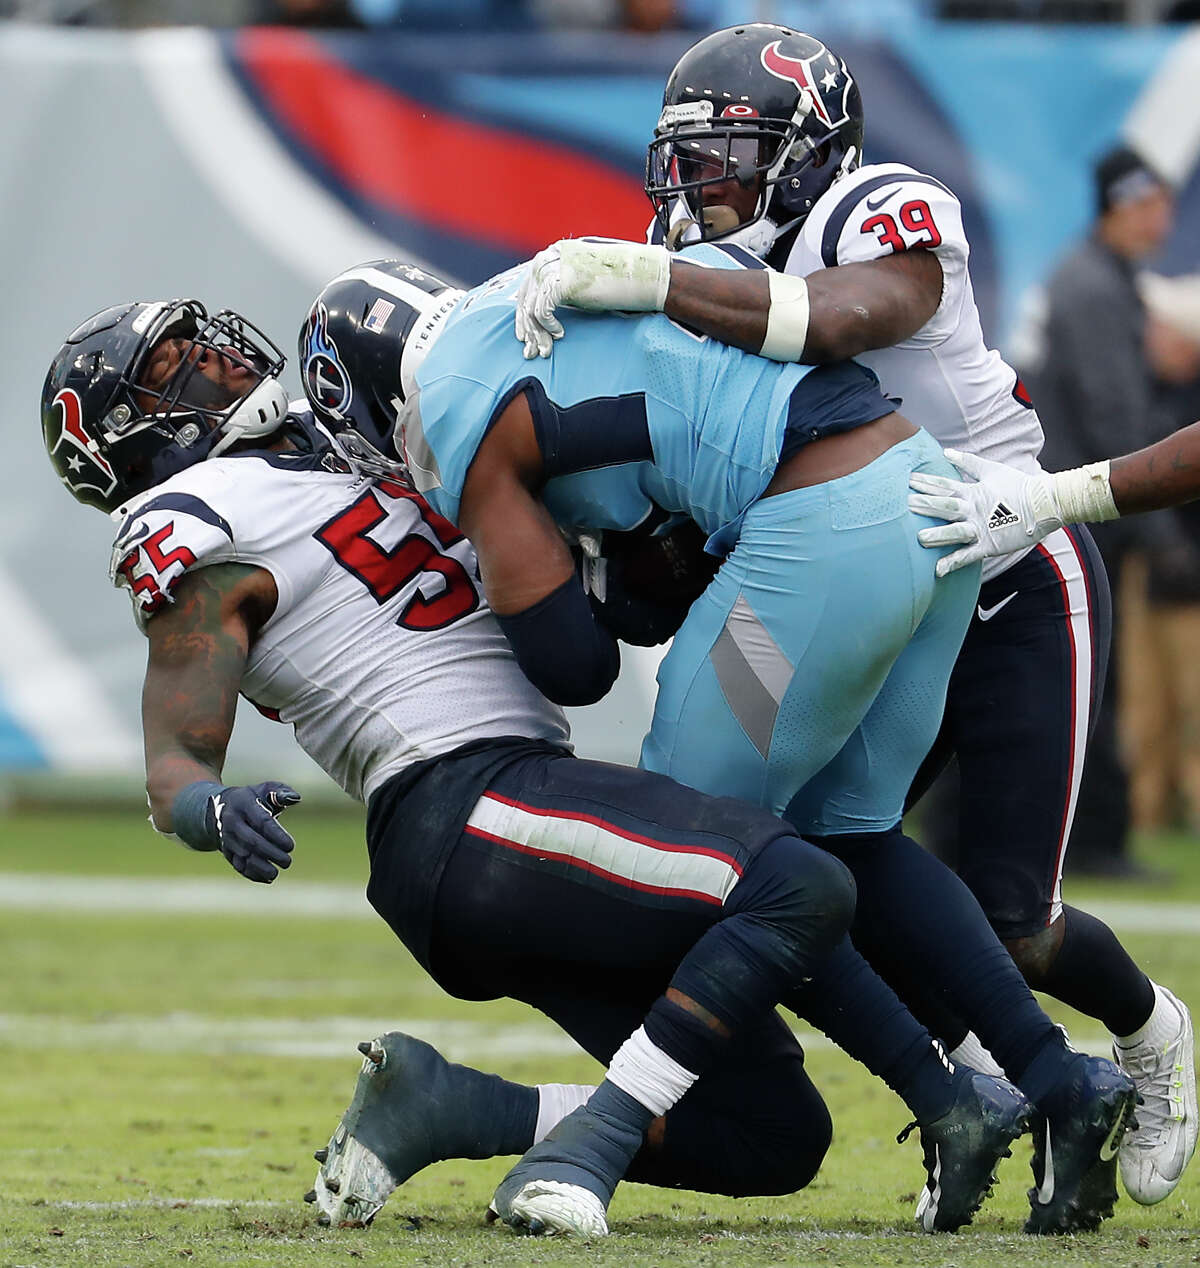 Houston Texans inside linebacker Benardrick McKinney (55) and free safety Tashaun Gipson (39) stop Tennessee Titans tight end Jonnu Smith (81) during the fourth quarter of an NFL football game at Nissan Stadium on Sunday, Dec. 15, 2019, in Nashville.